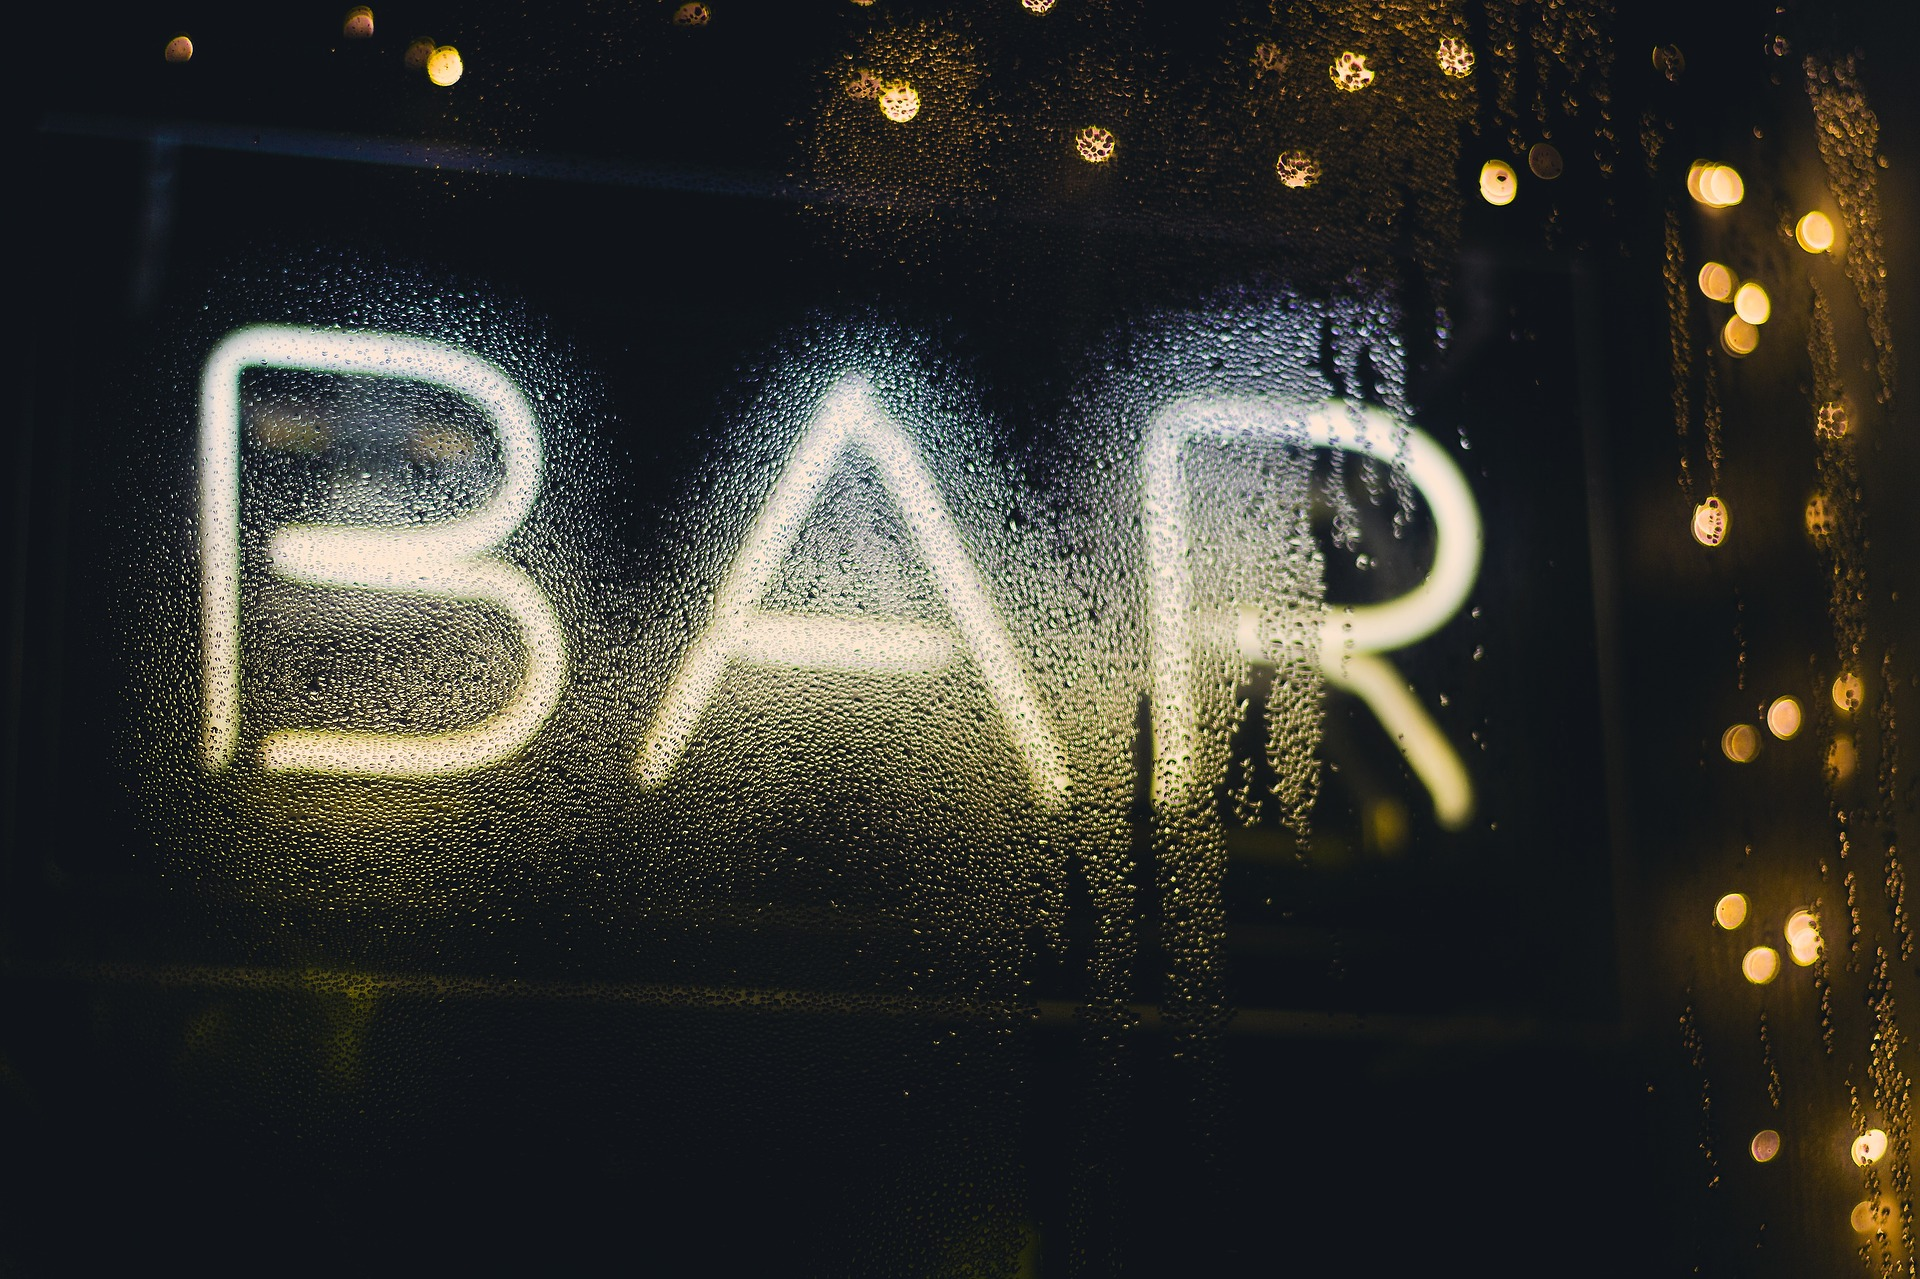 Will There Be More DUIs If California Extends Bar Hours? | San Diego